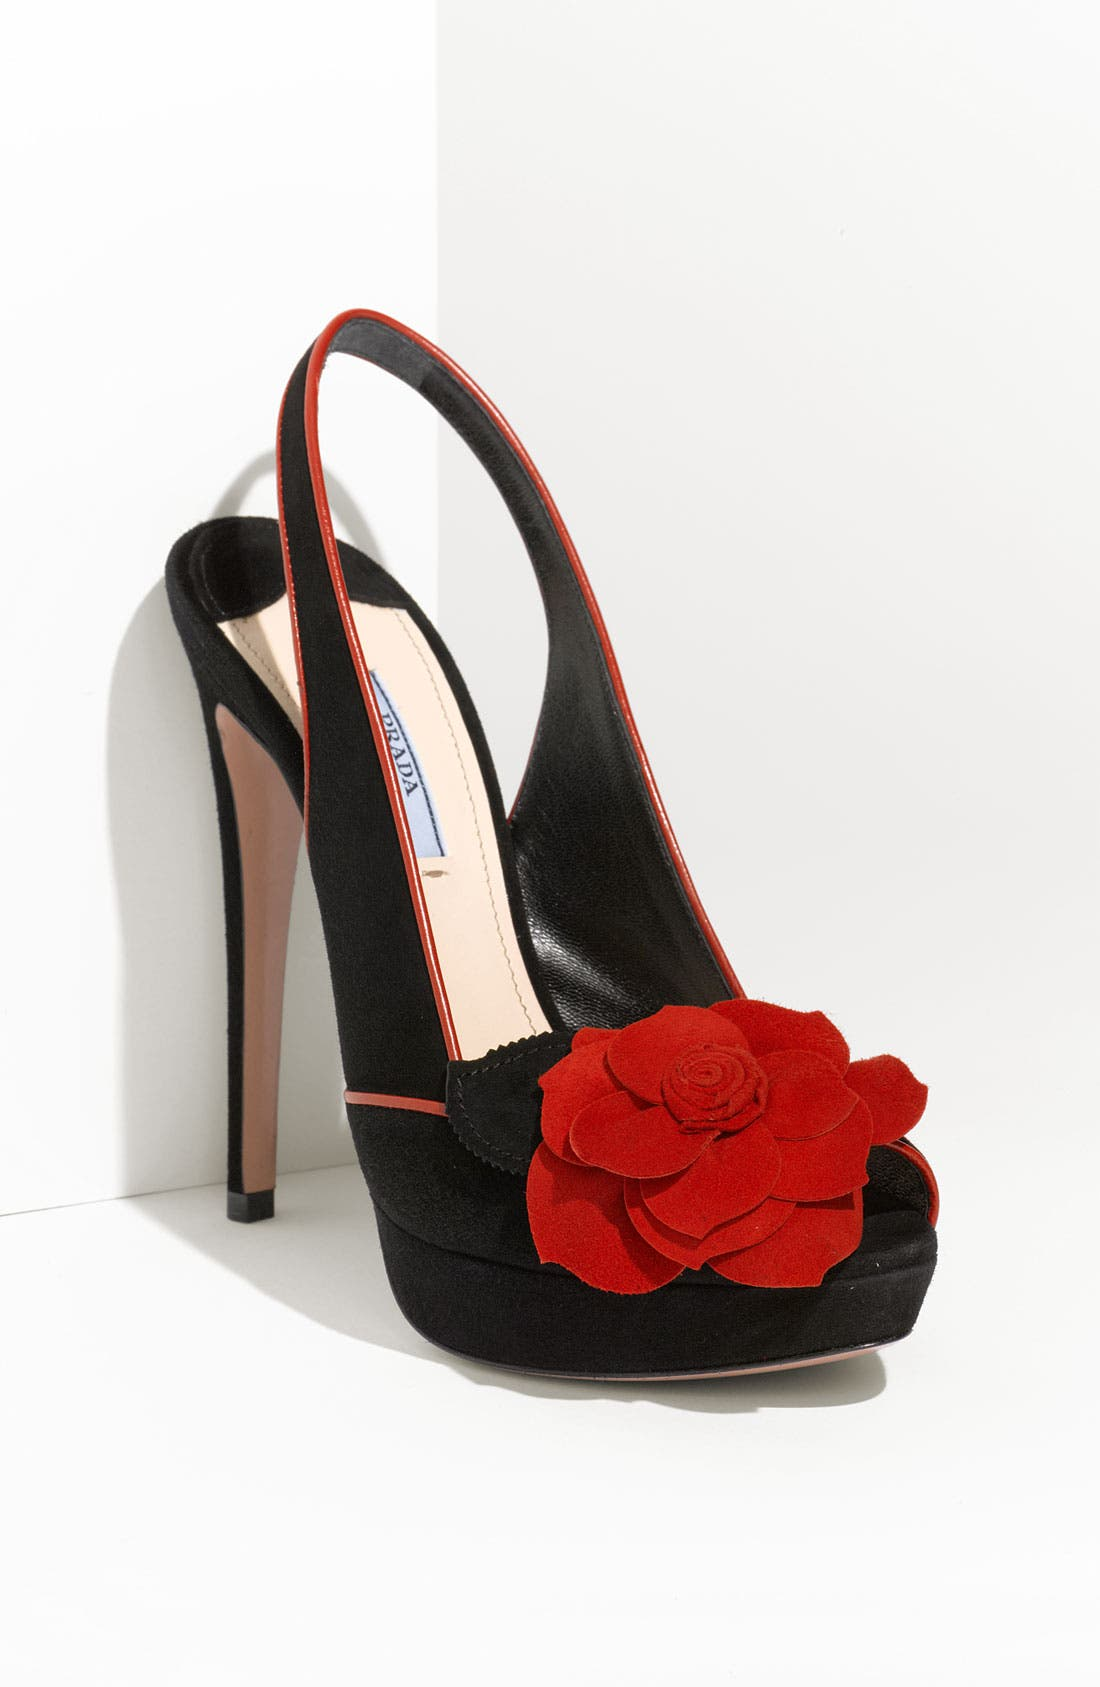 Alternate Image 1 Selected - Prada Rosette Trim Platform Sandal